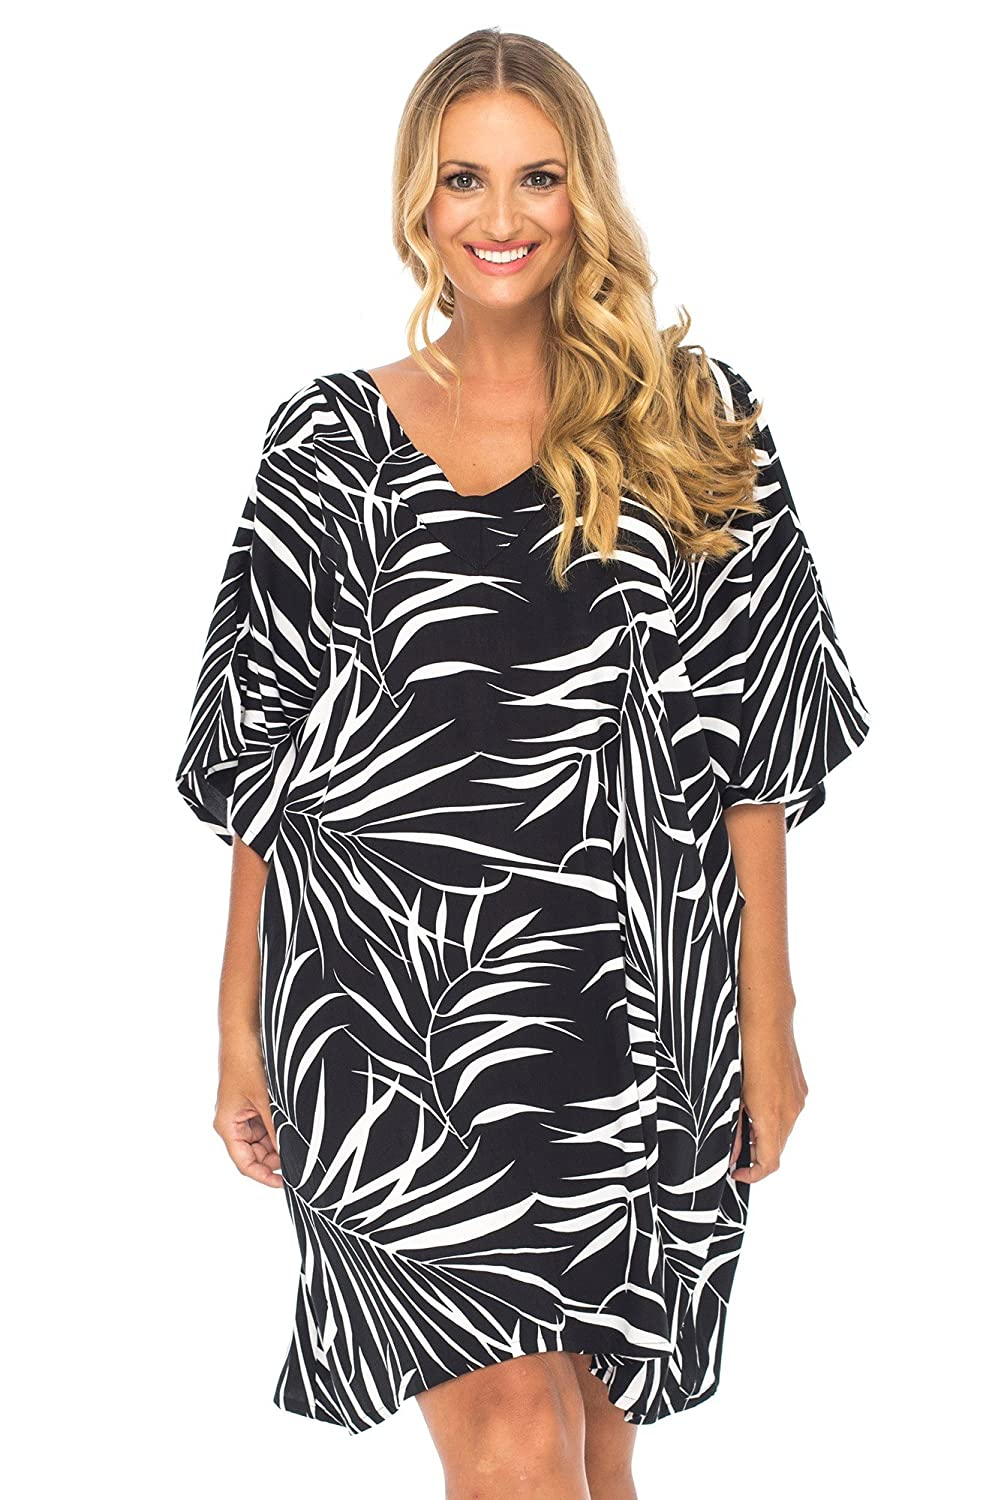 e2c59375a72580 Gorgeous Back From Bali plus size sundress poncho in a striking black and  white palm frond print adds tropical allure at the beach or as a tunic dress